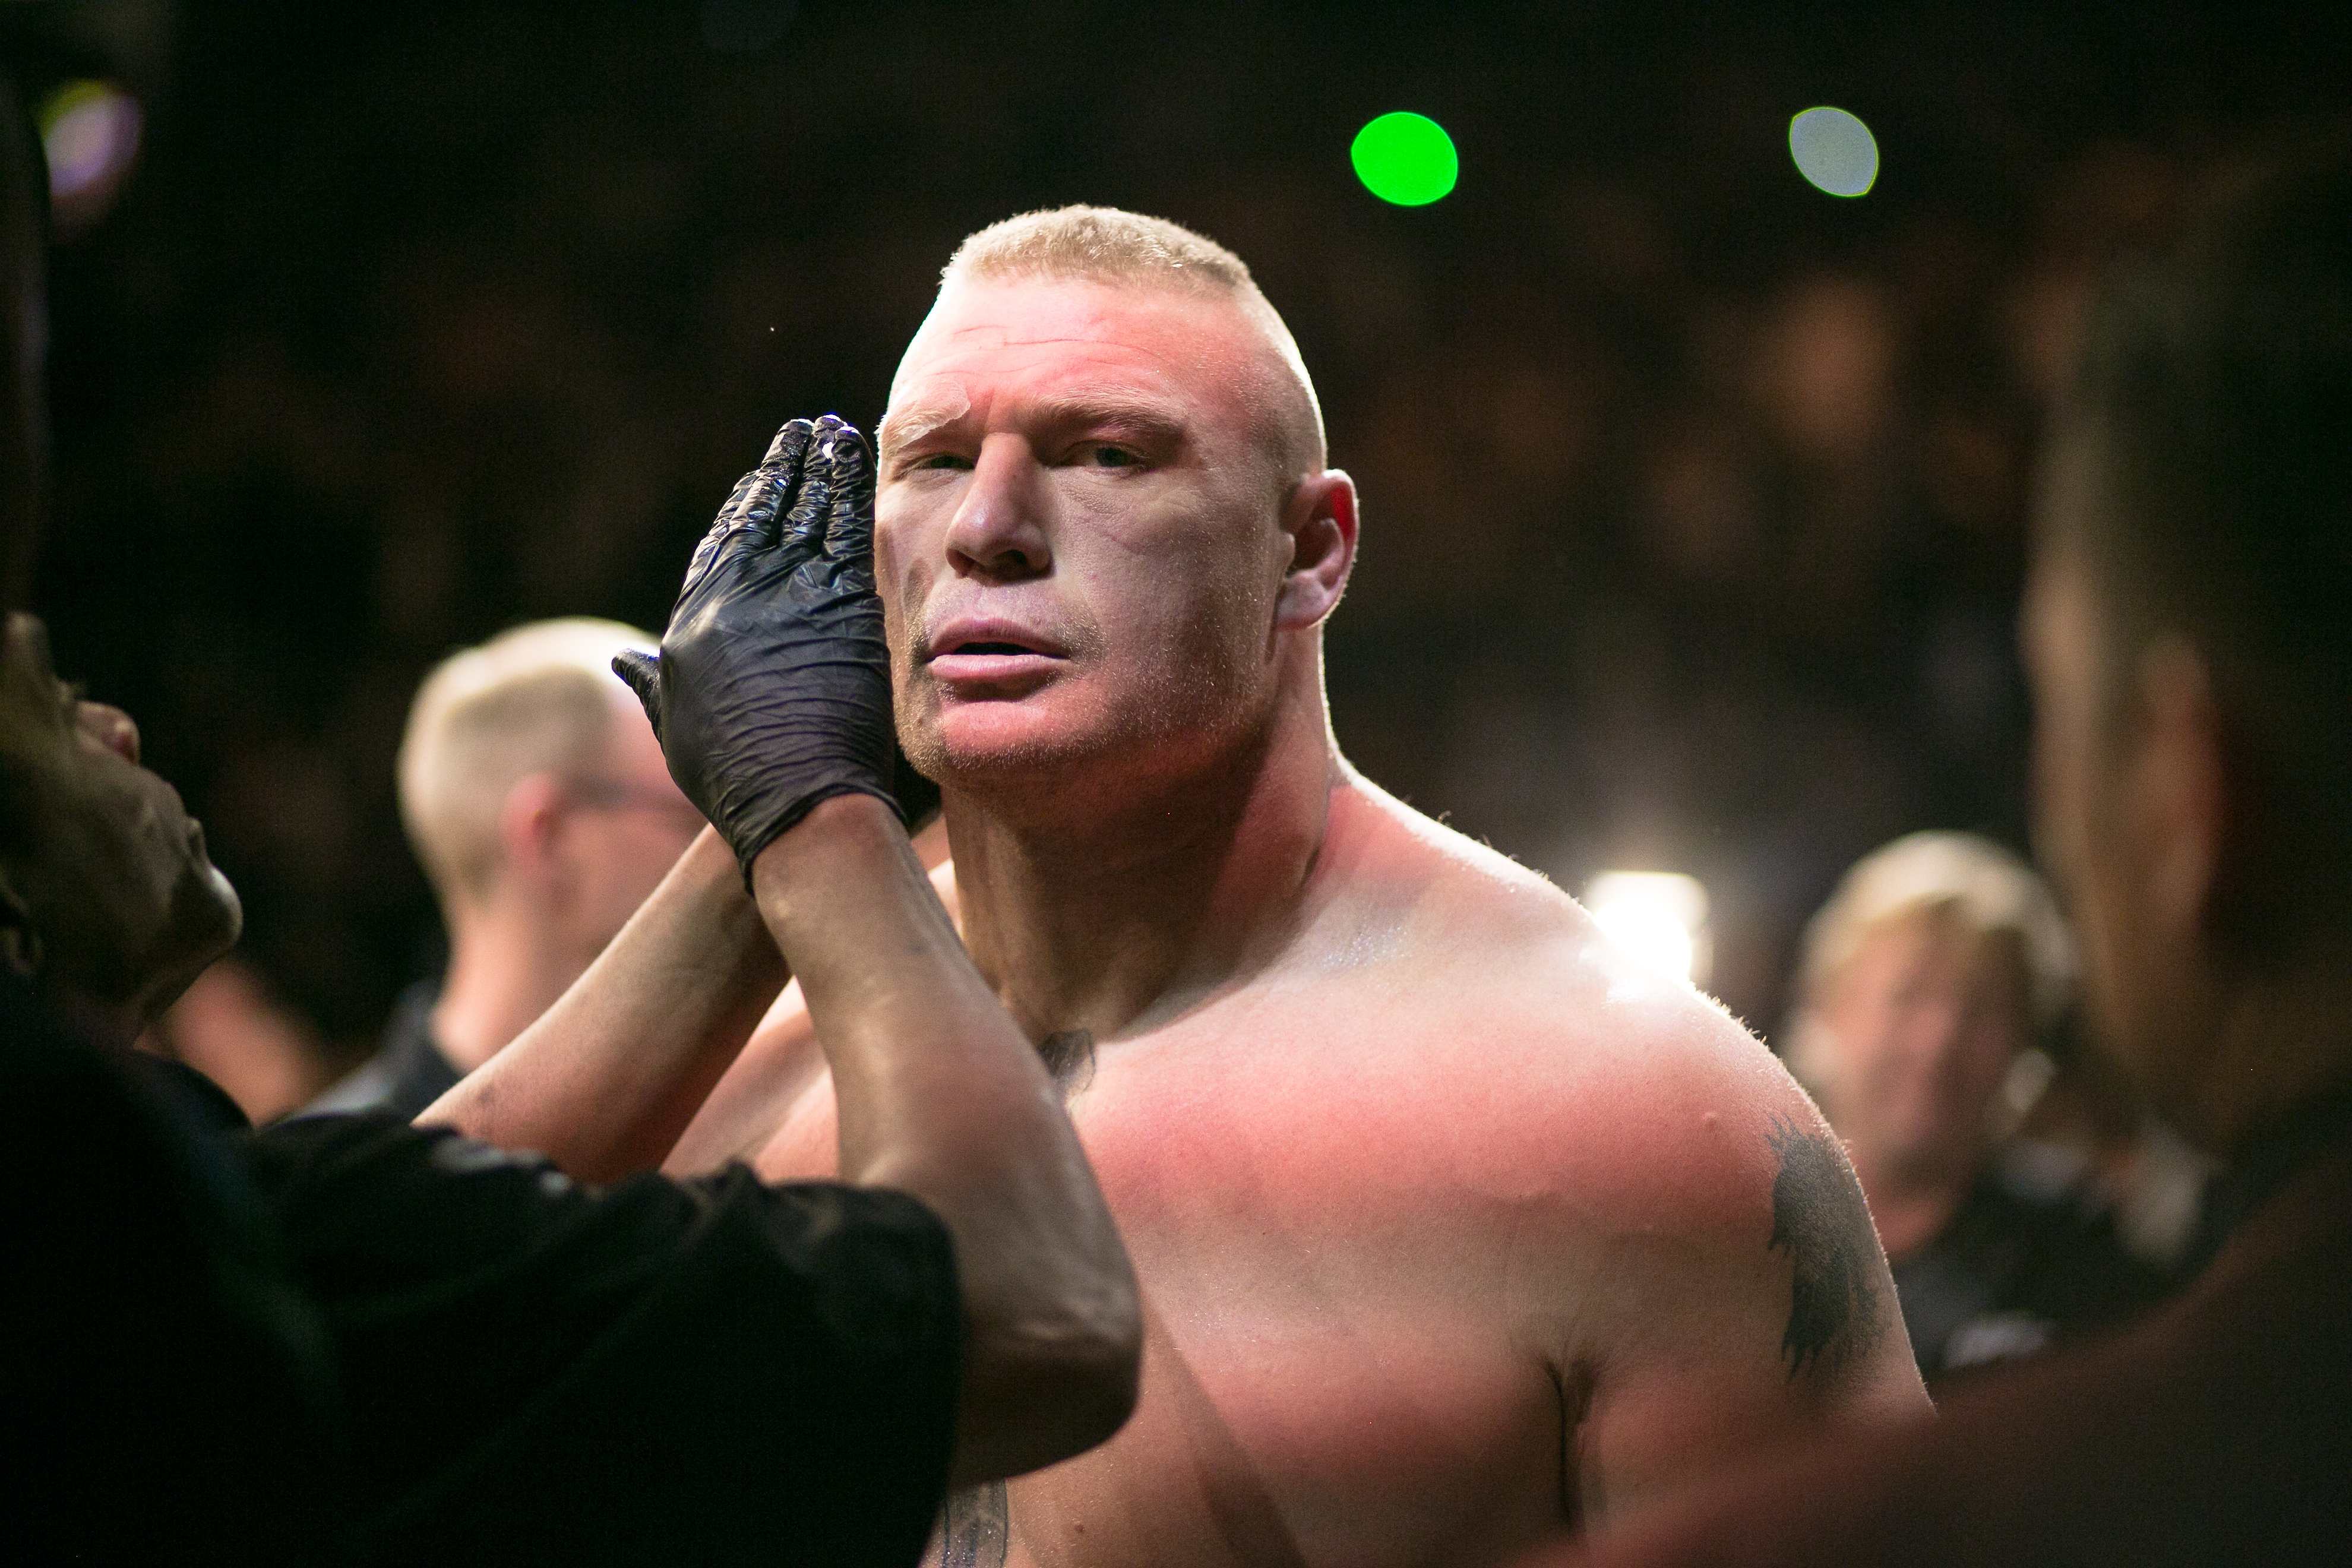 WWE star Brock Lesnar